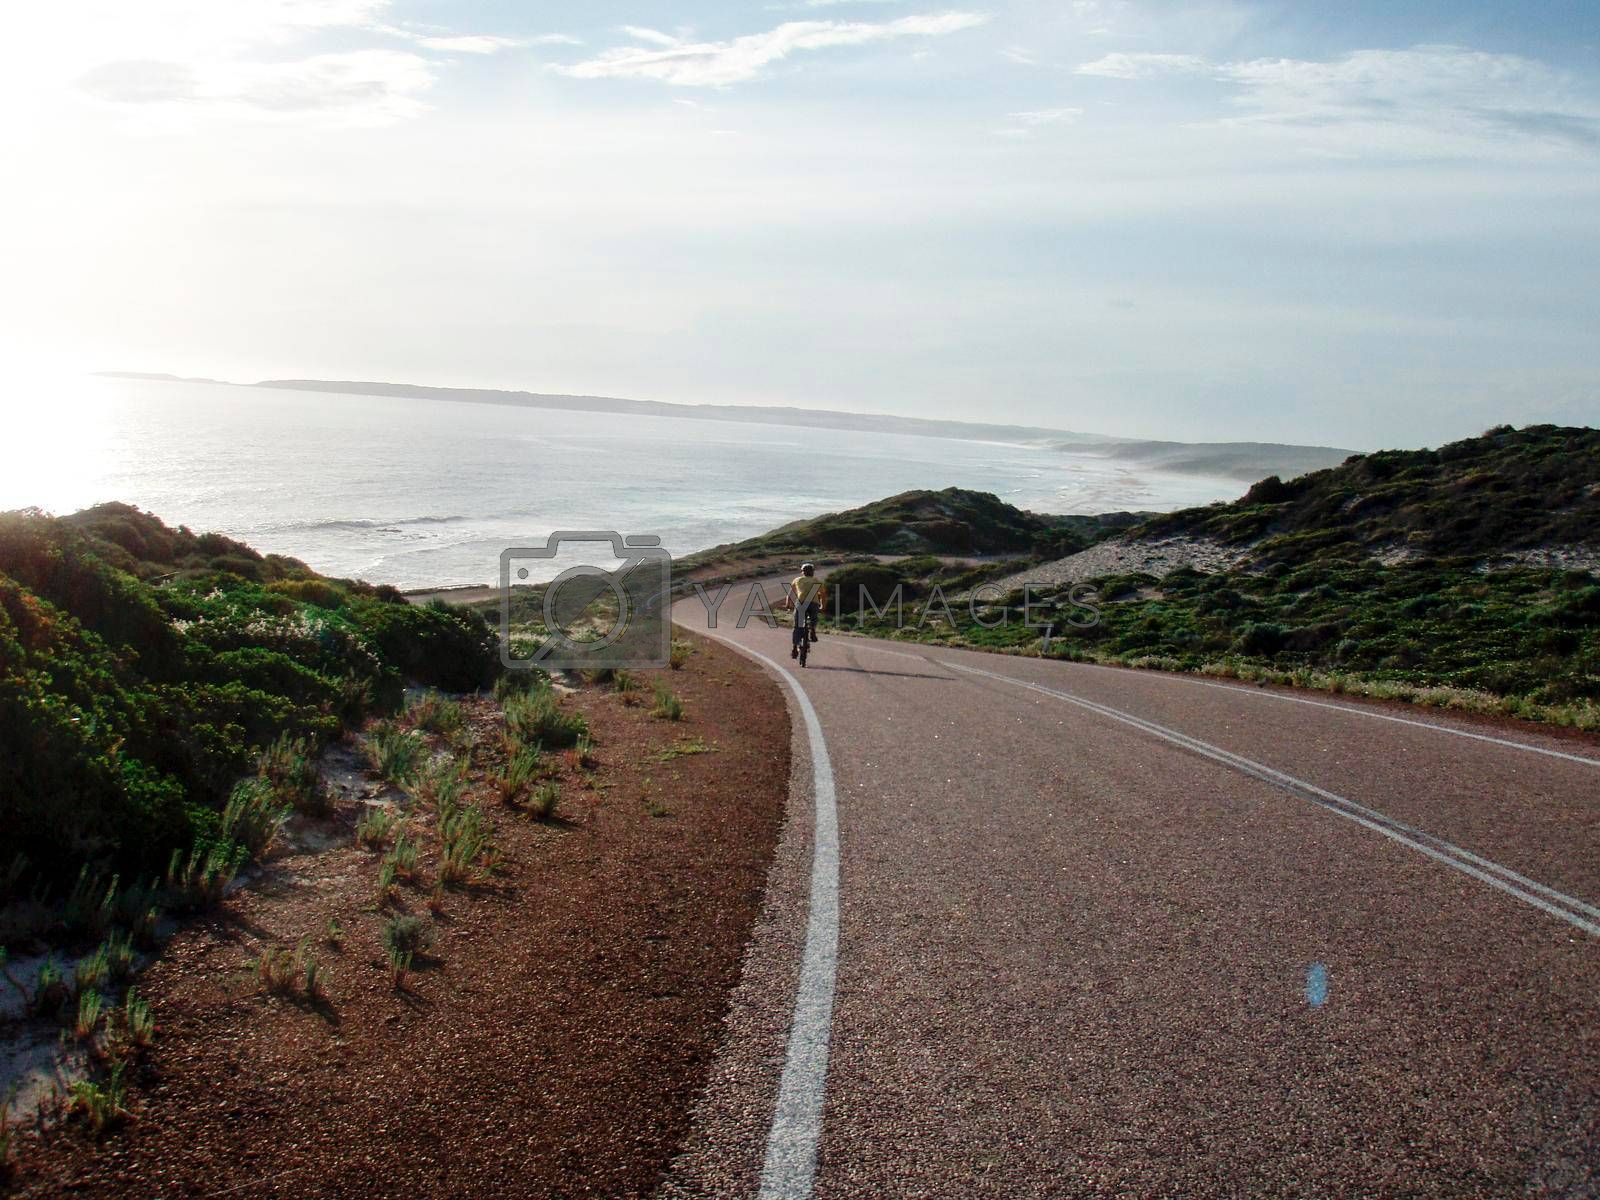 cycling tour on the road in Australia, traveling with the bicycle